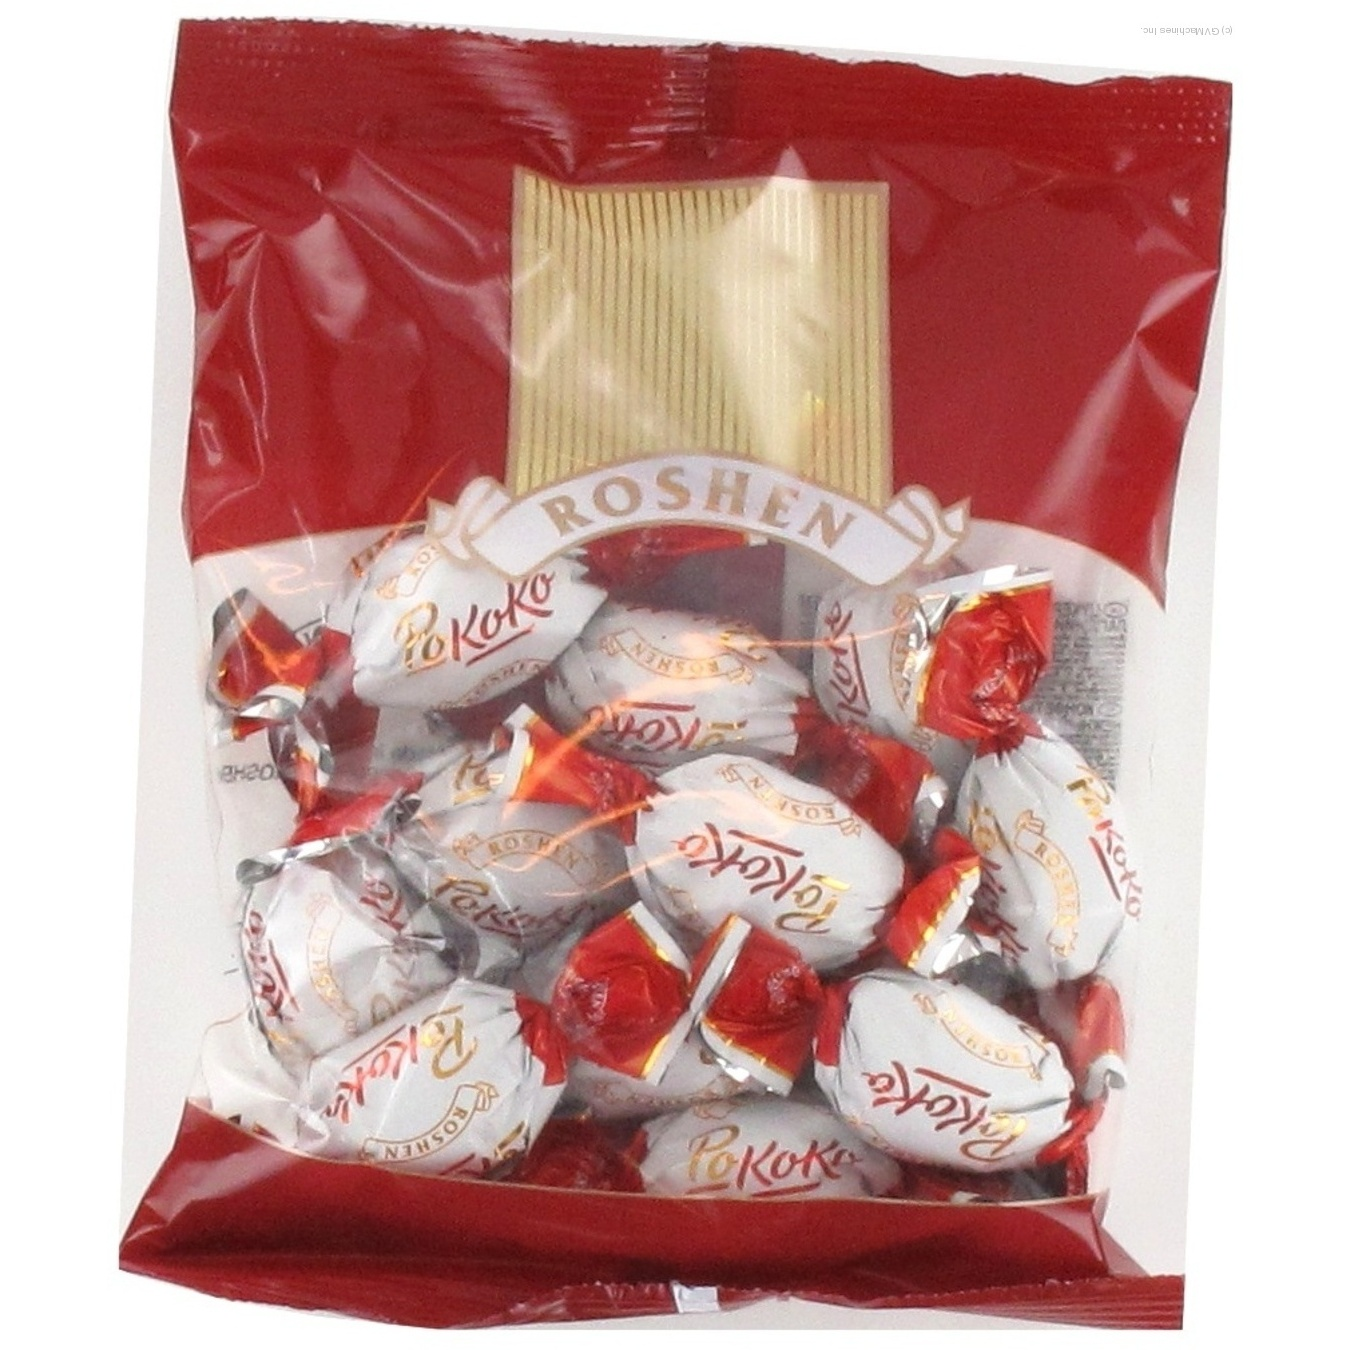 Candy Roshen Rokko With Cream With Filling 160g Packaged